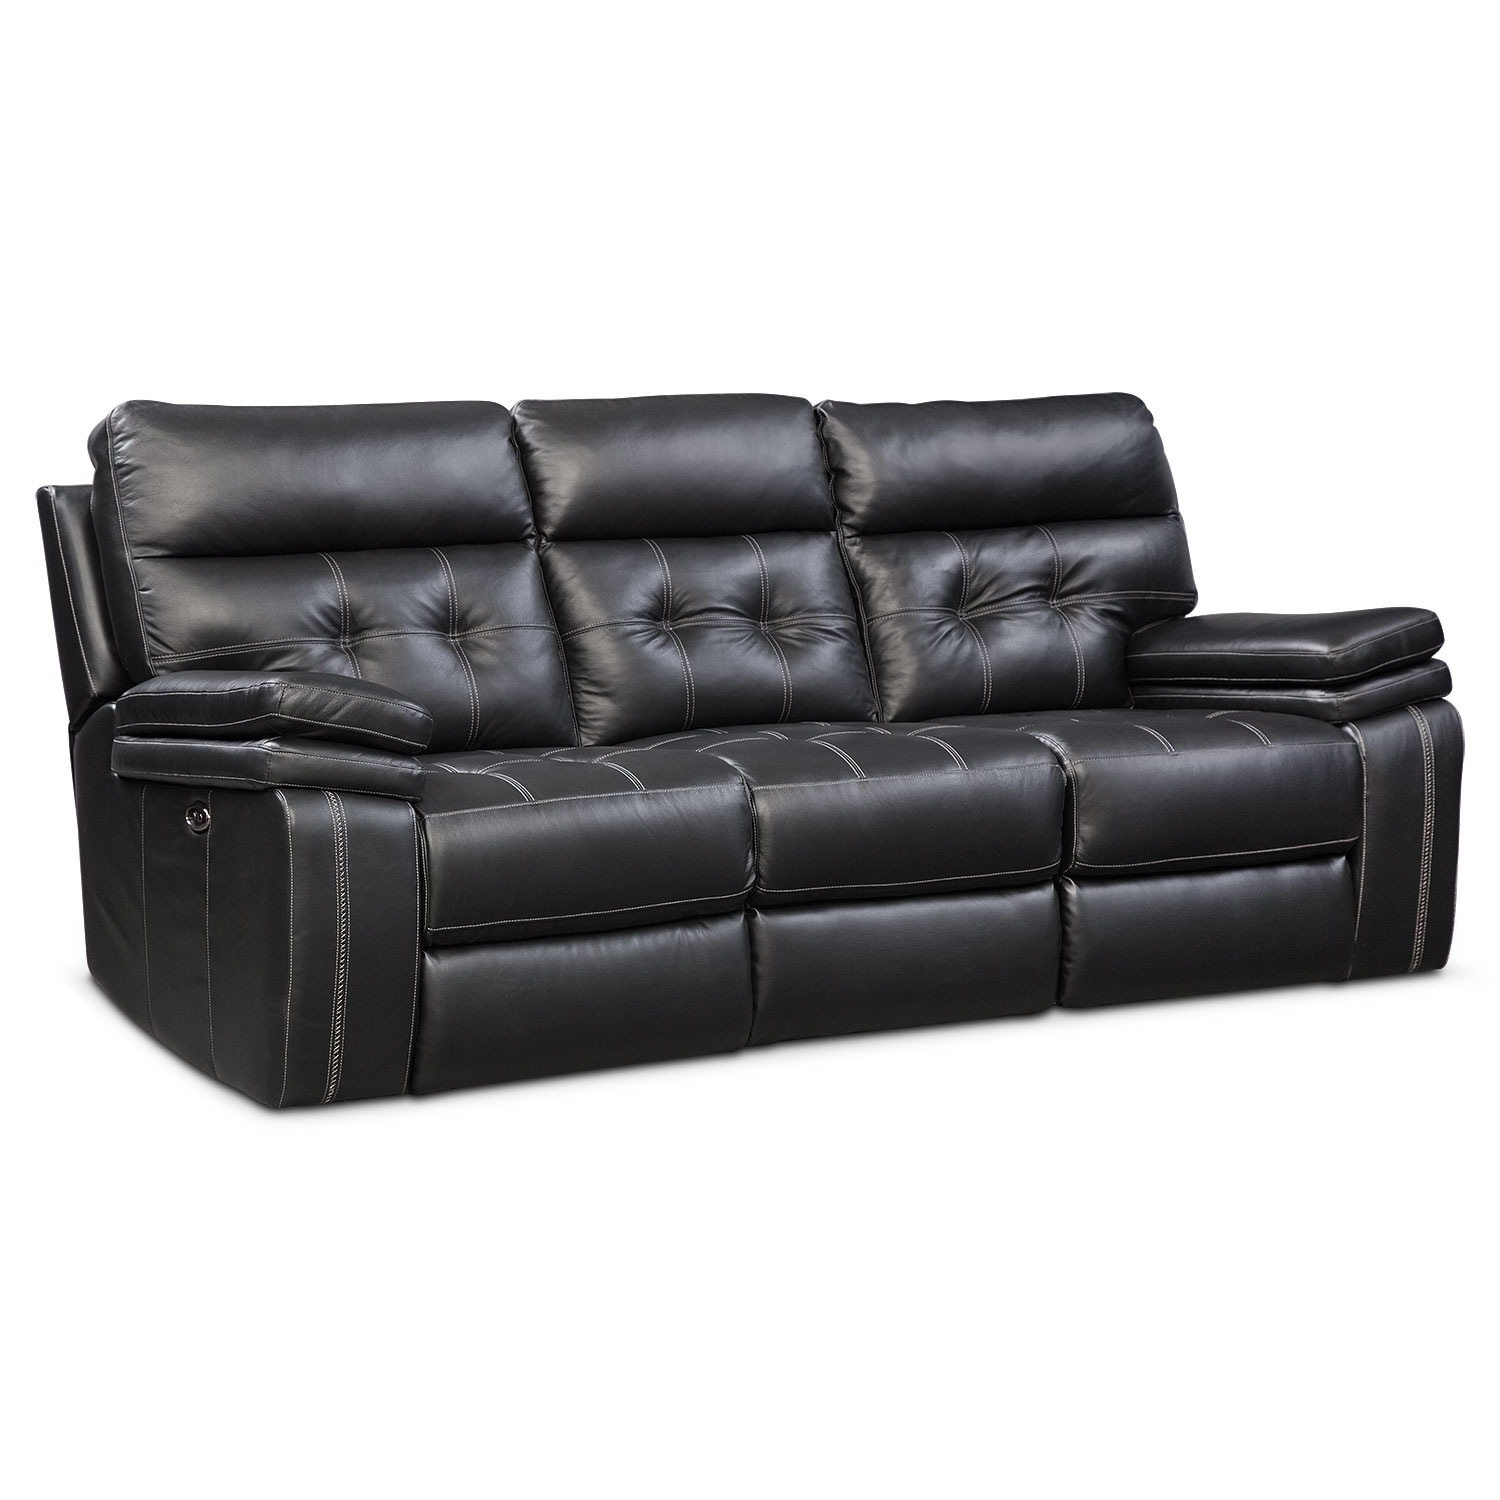 Brisco Power Reclining Sofa Reclining Loveseat And Glider Recliner Set Black American